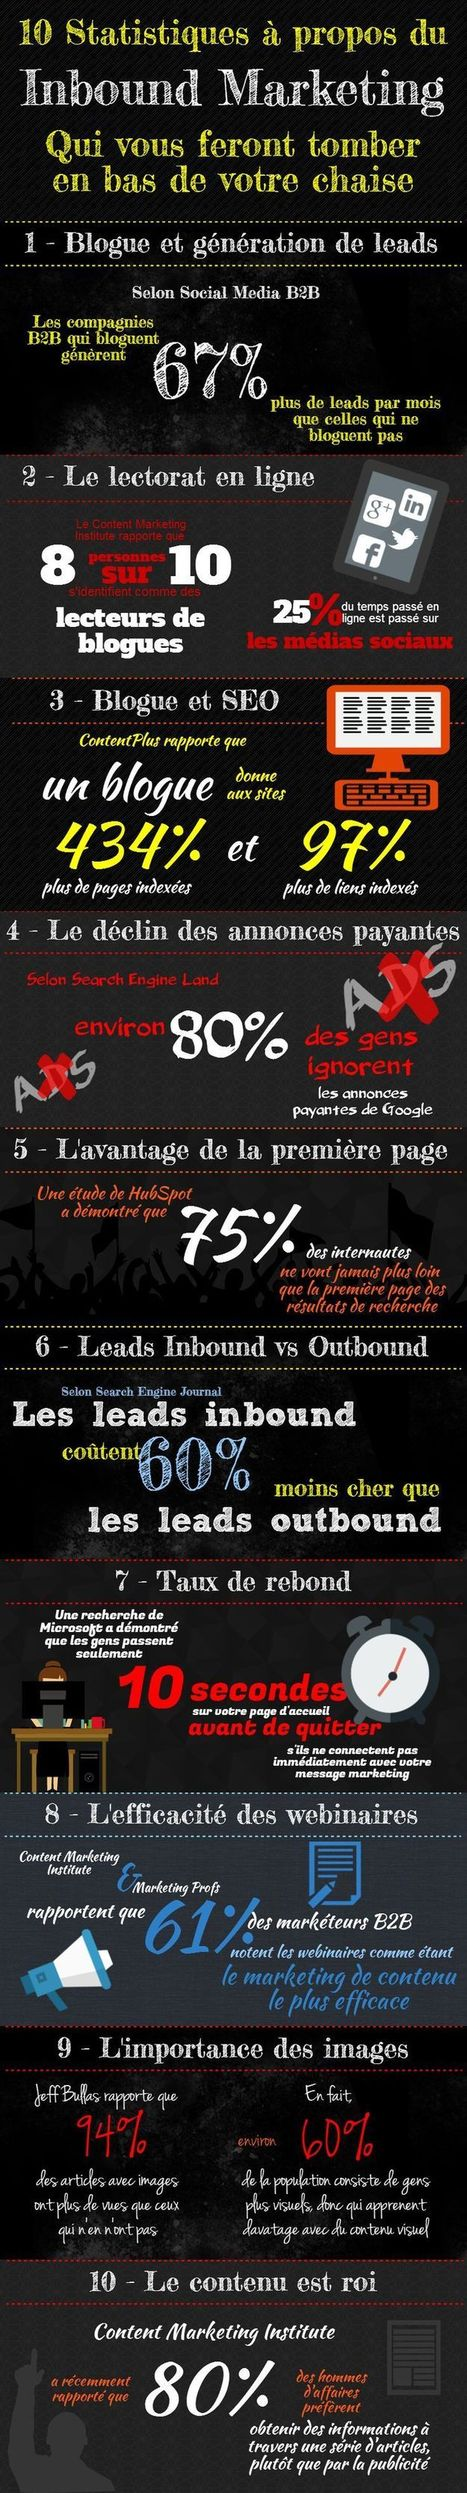 10 statistiques qui prouvent l'efficacité de l'Inbound Marketing - Le Blog Kinoa | SEO - REFERENCEMENTS | Scoop.it